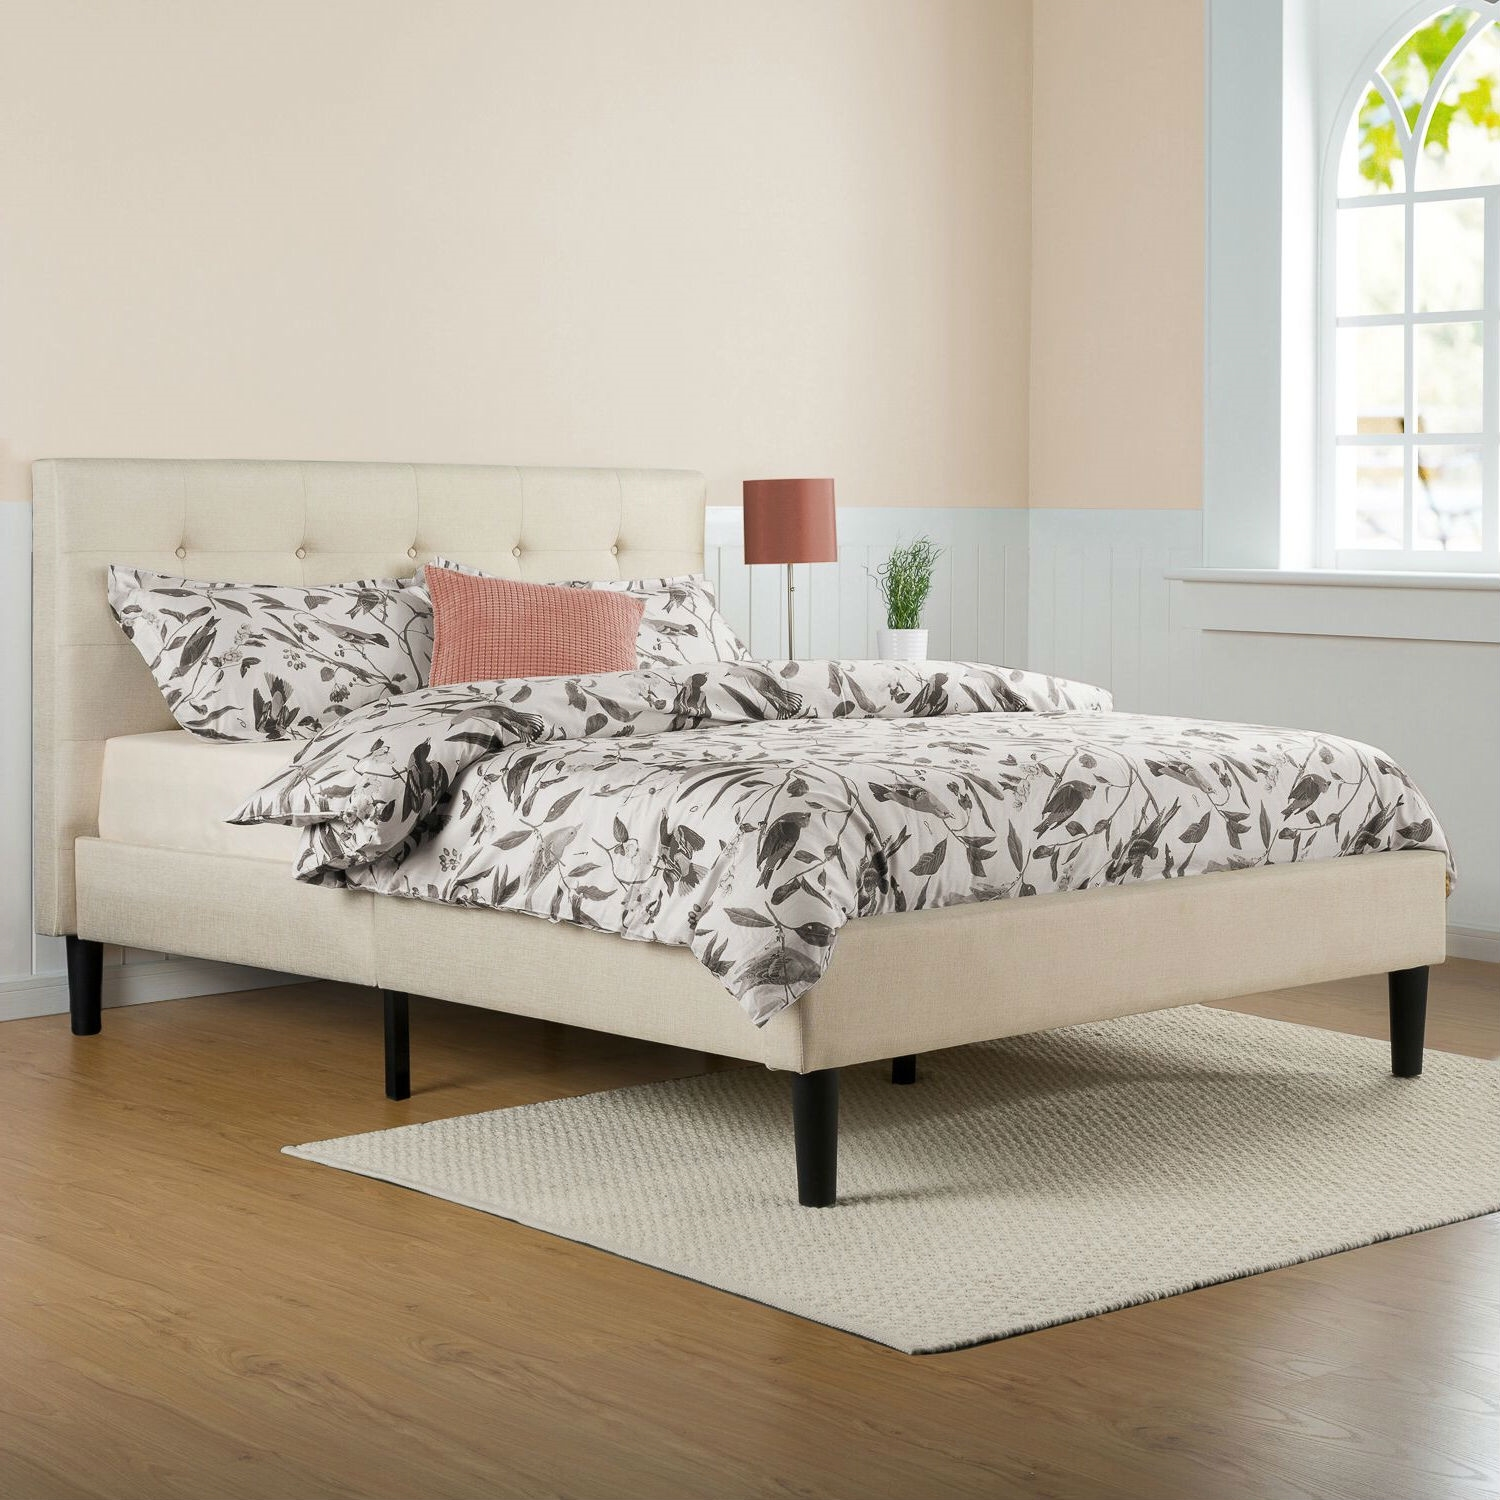 King Size Taupe Beige Upholstered Platform Bed Frame With Headboard Fastfurnishings Com